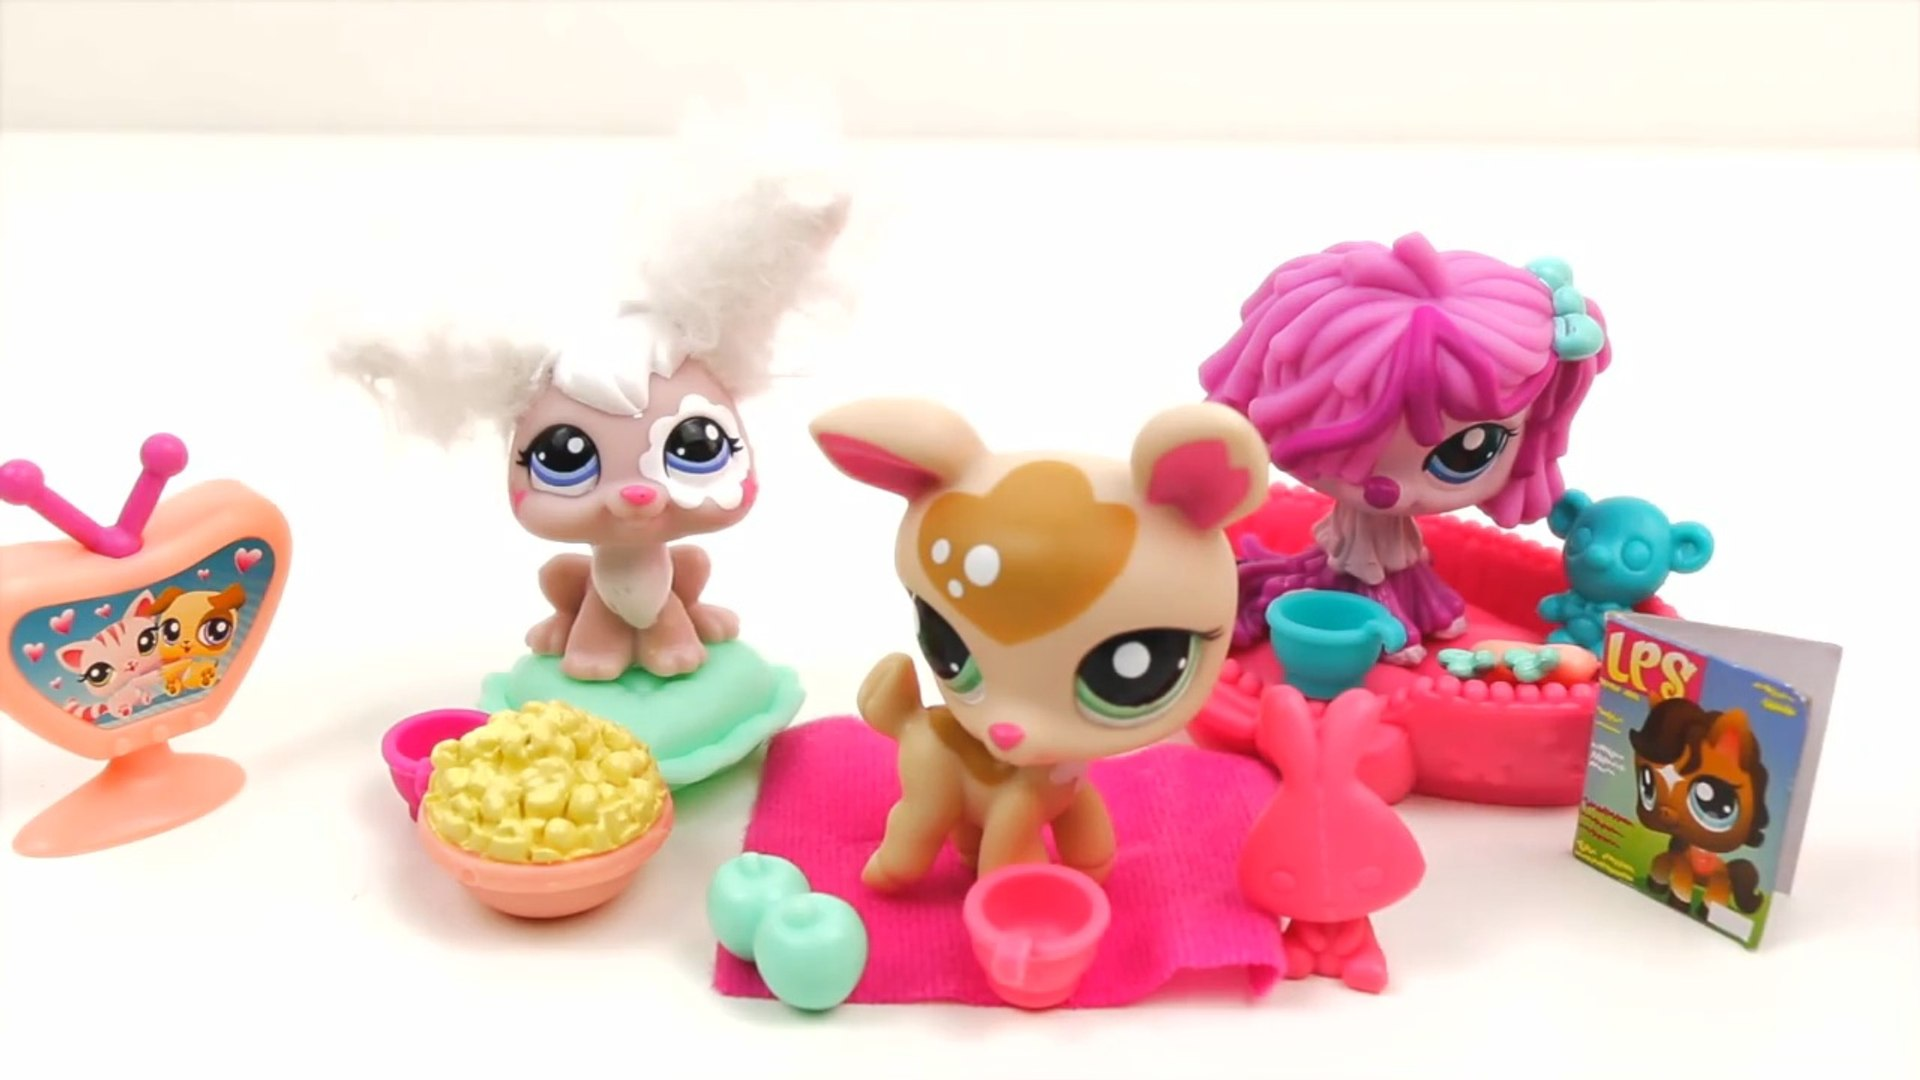 Littlest Pet Shop Playset Unboxing toys lps Cute Puppies Pets toy - kinder surprise toys play doh ca